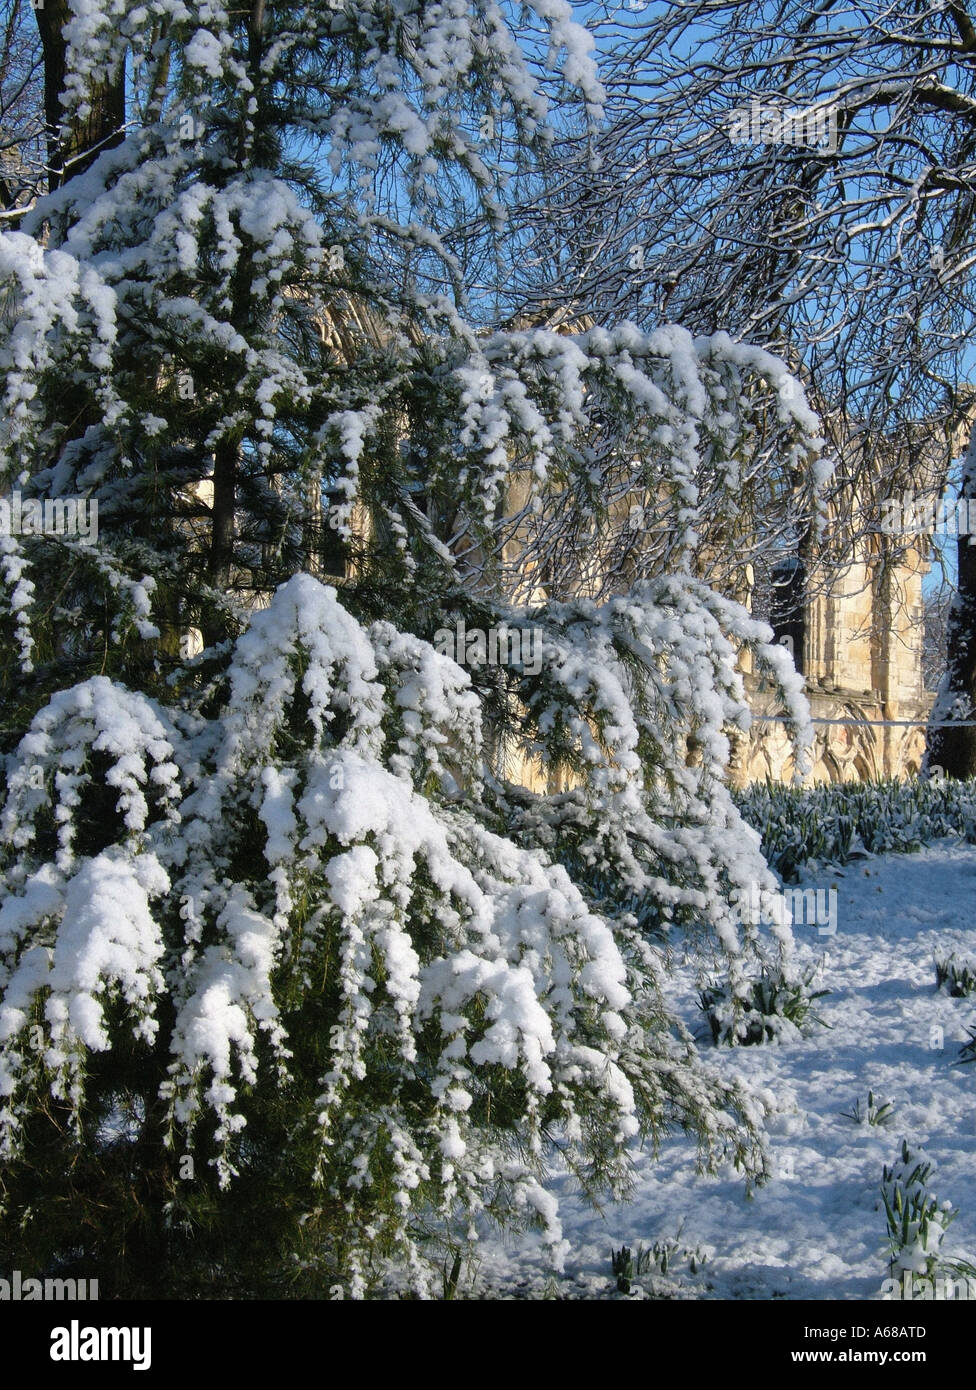 St Mary s Abbey Museum Gardens Yorkshire Museum York UK in snow - Stock Image